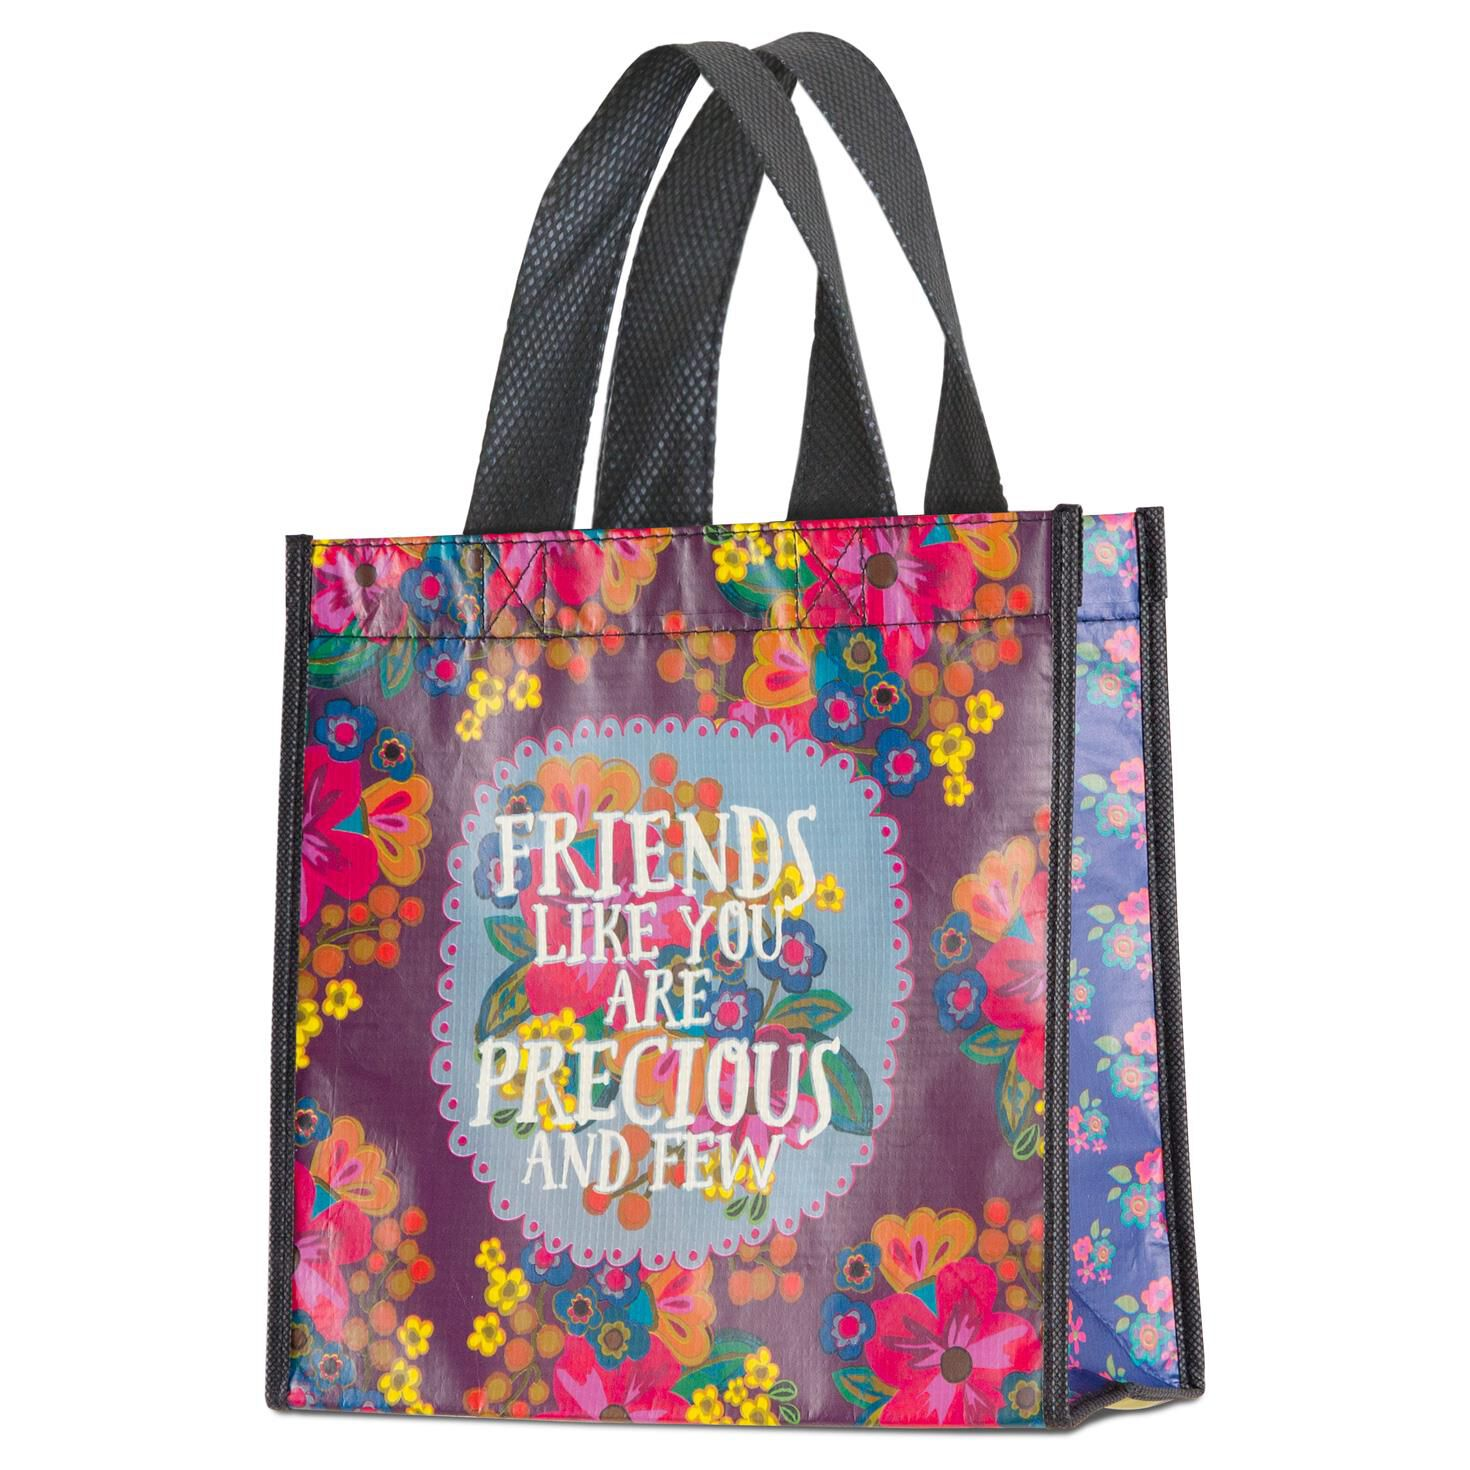 Natural life friends like you gift bag medium handbags purses natural life friends like you gift bag medium handbags purses hallmark negle